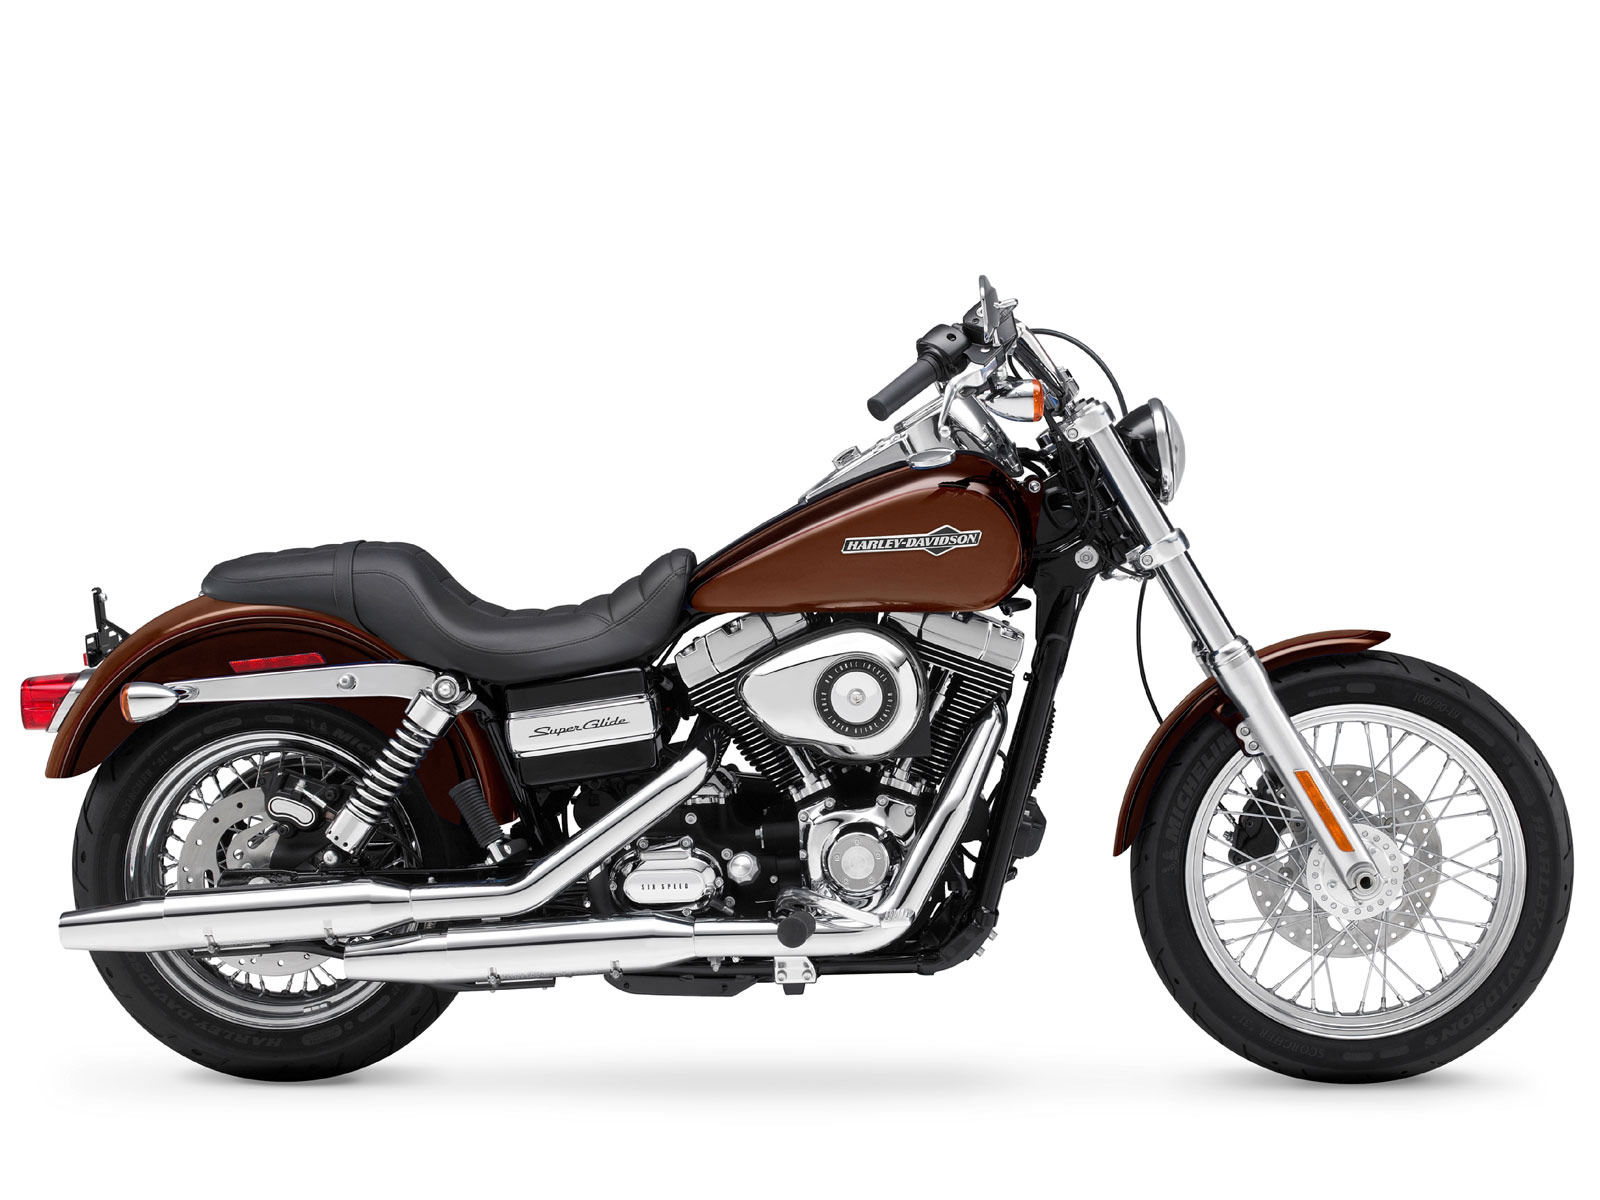 fxdc dyna super glide custom 2011 harley davidson wallpapers. Black Bedroom Furniture Sets. Home Design Ideas